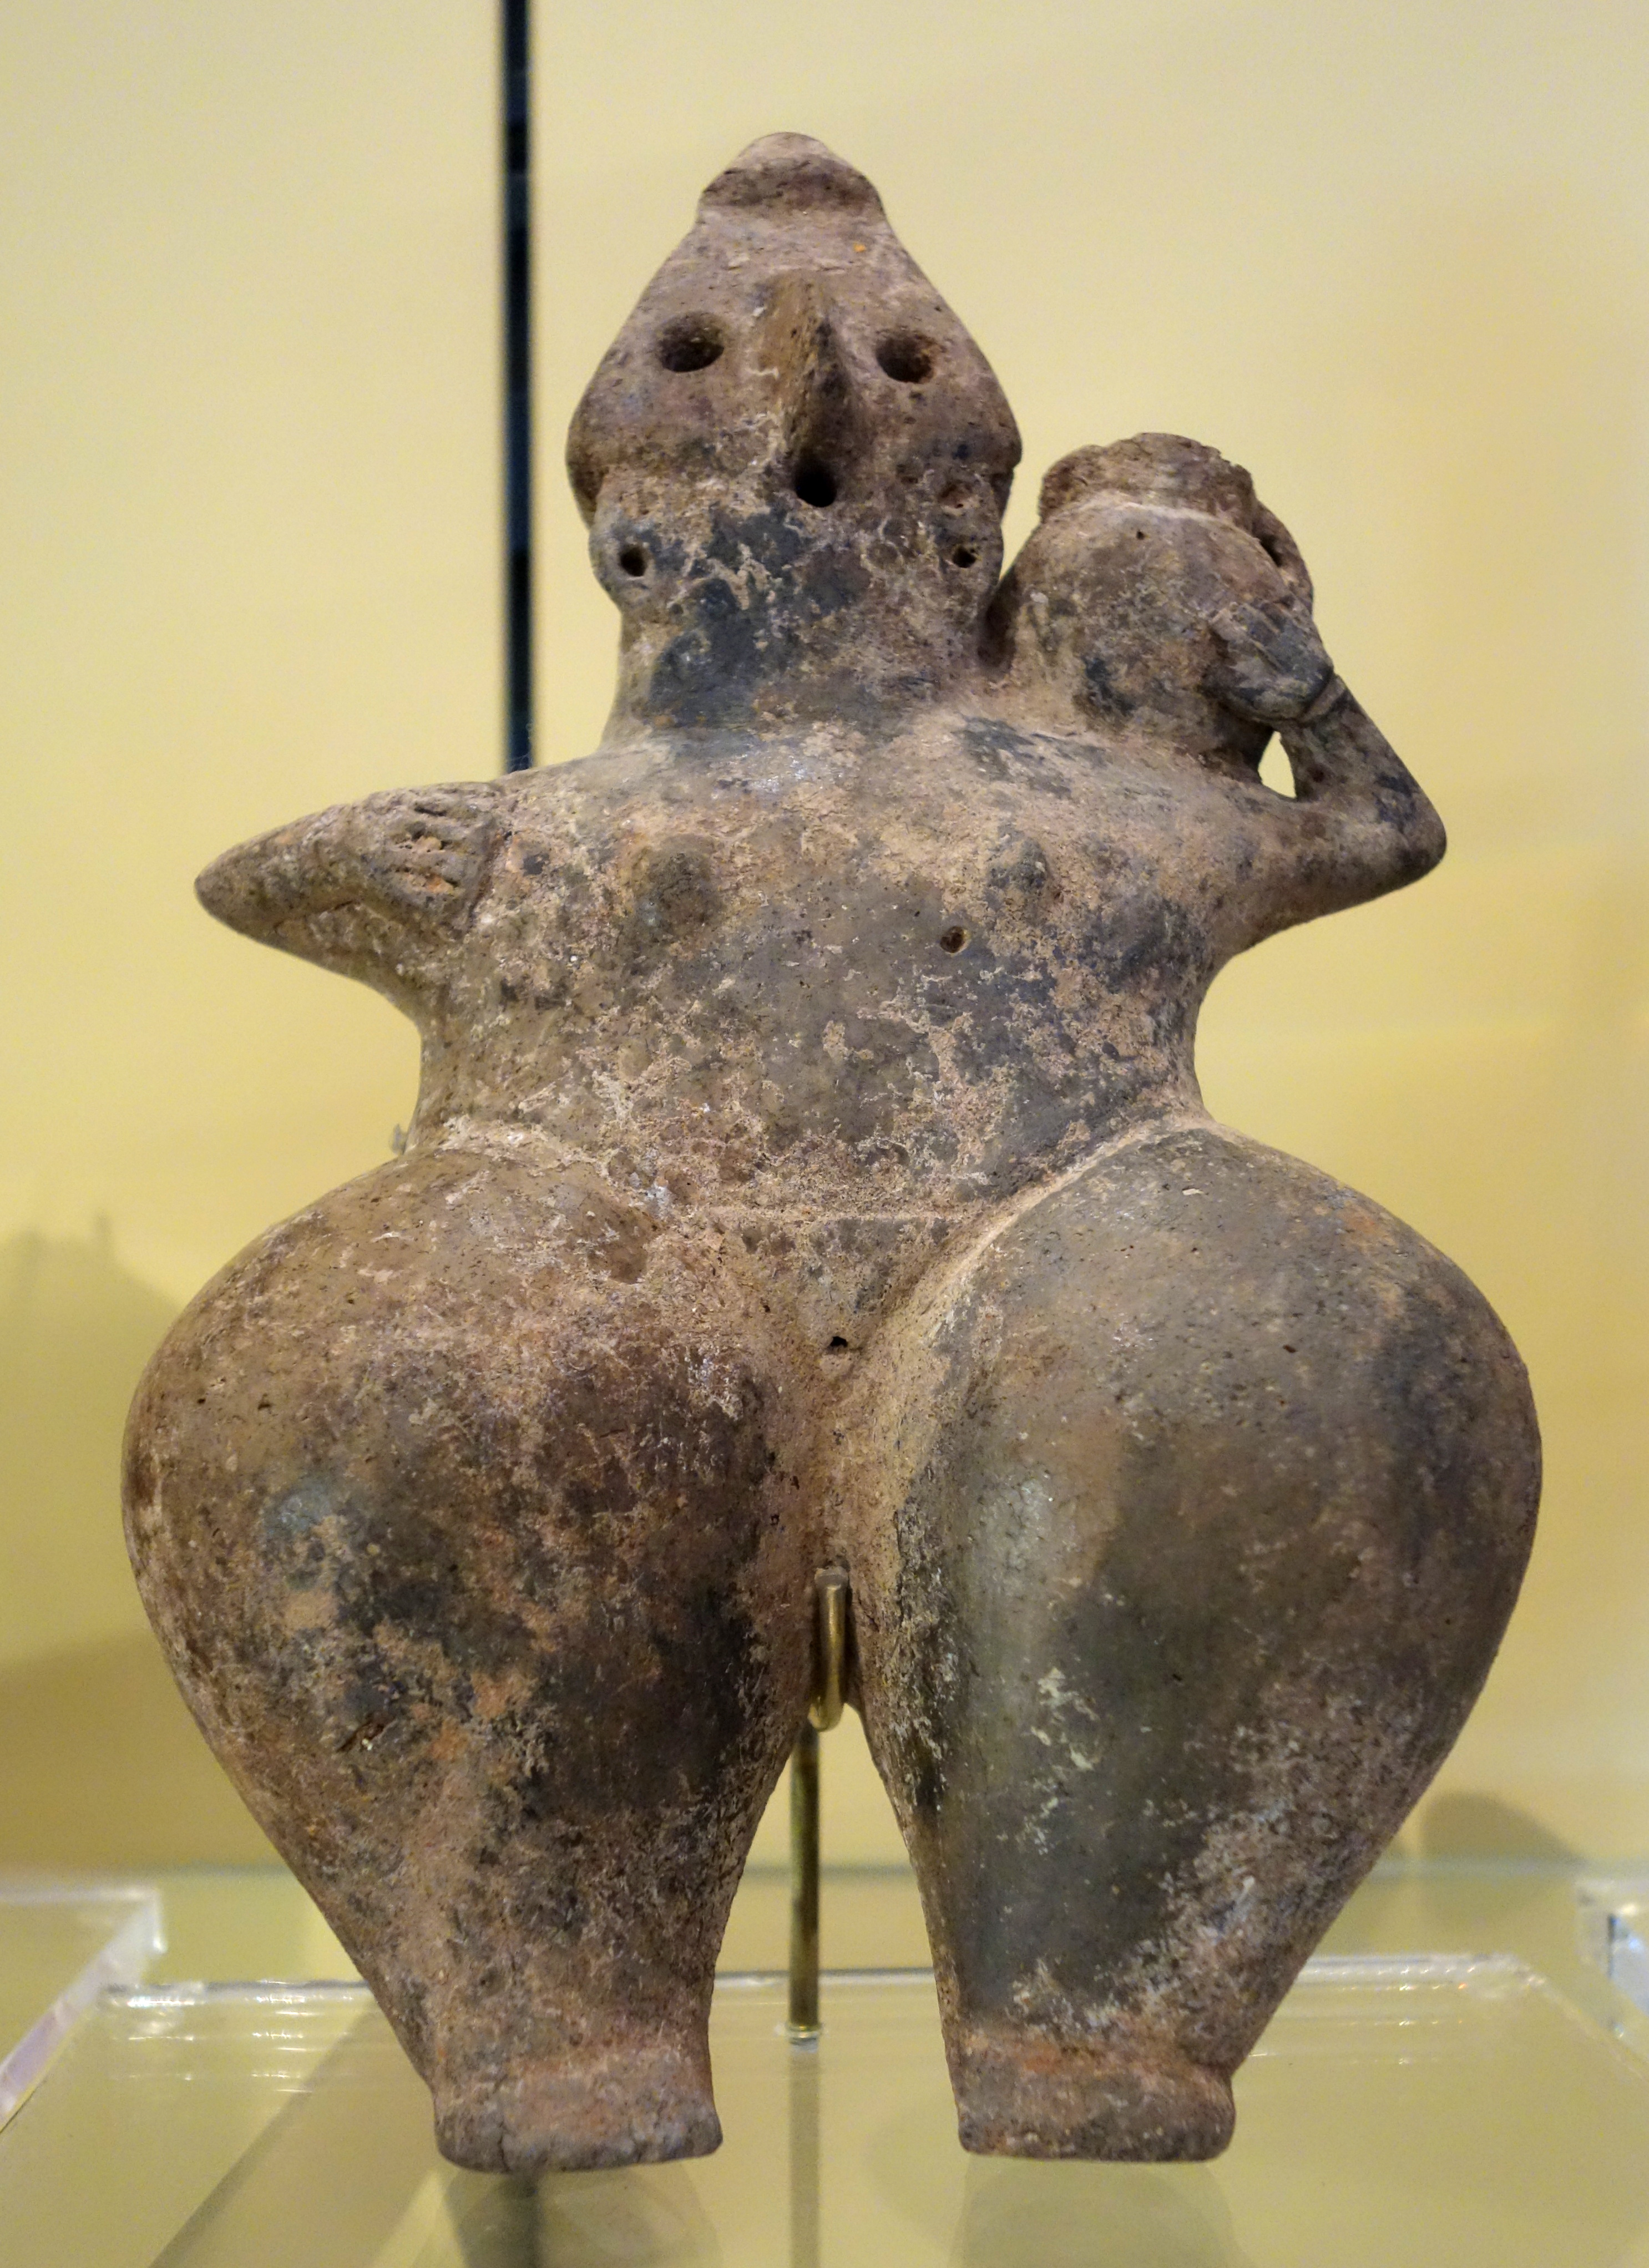 Amlash-style mother goddess, 2 of 5, perhaps Amlash, Northern Iran, Iron Age, c. 1200-900 BC, earthenware - Royal Ontario Museum - DSC04532.JPG